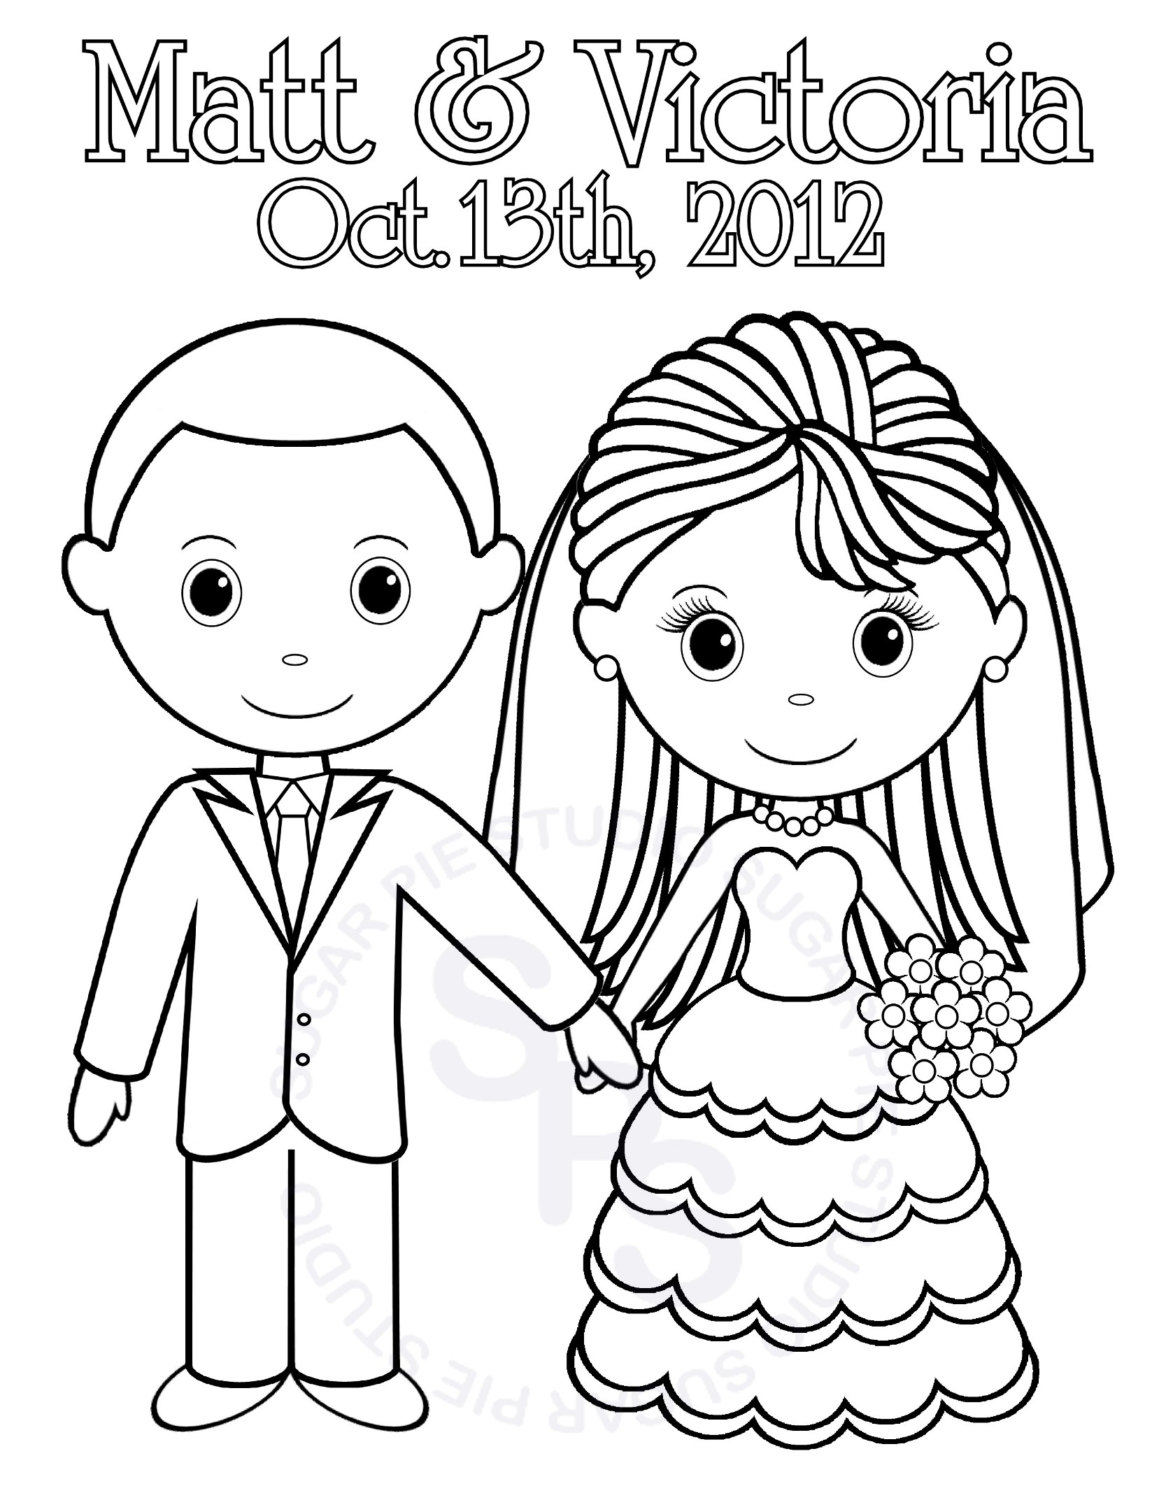 bride and groom coloring pages bride and groom special and romantic moment coloring pages and coloring pages groom bride